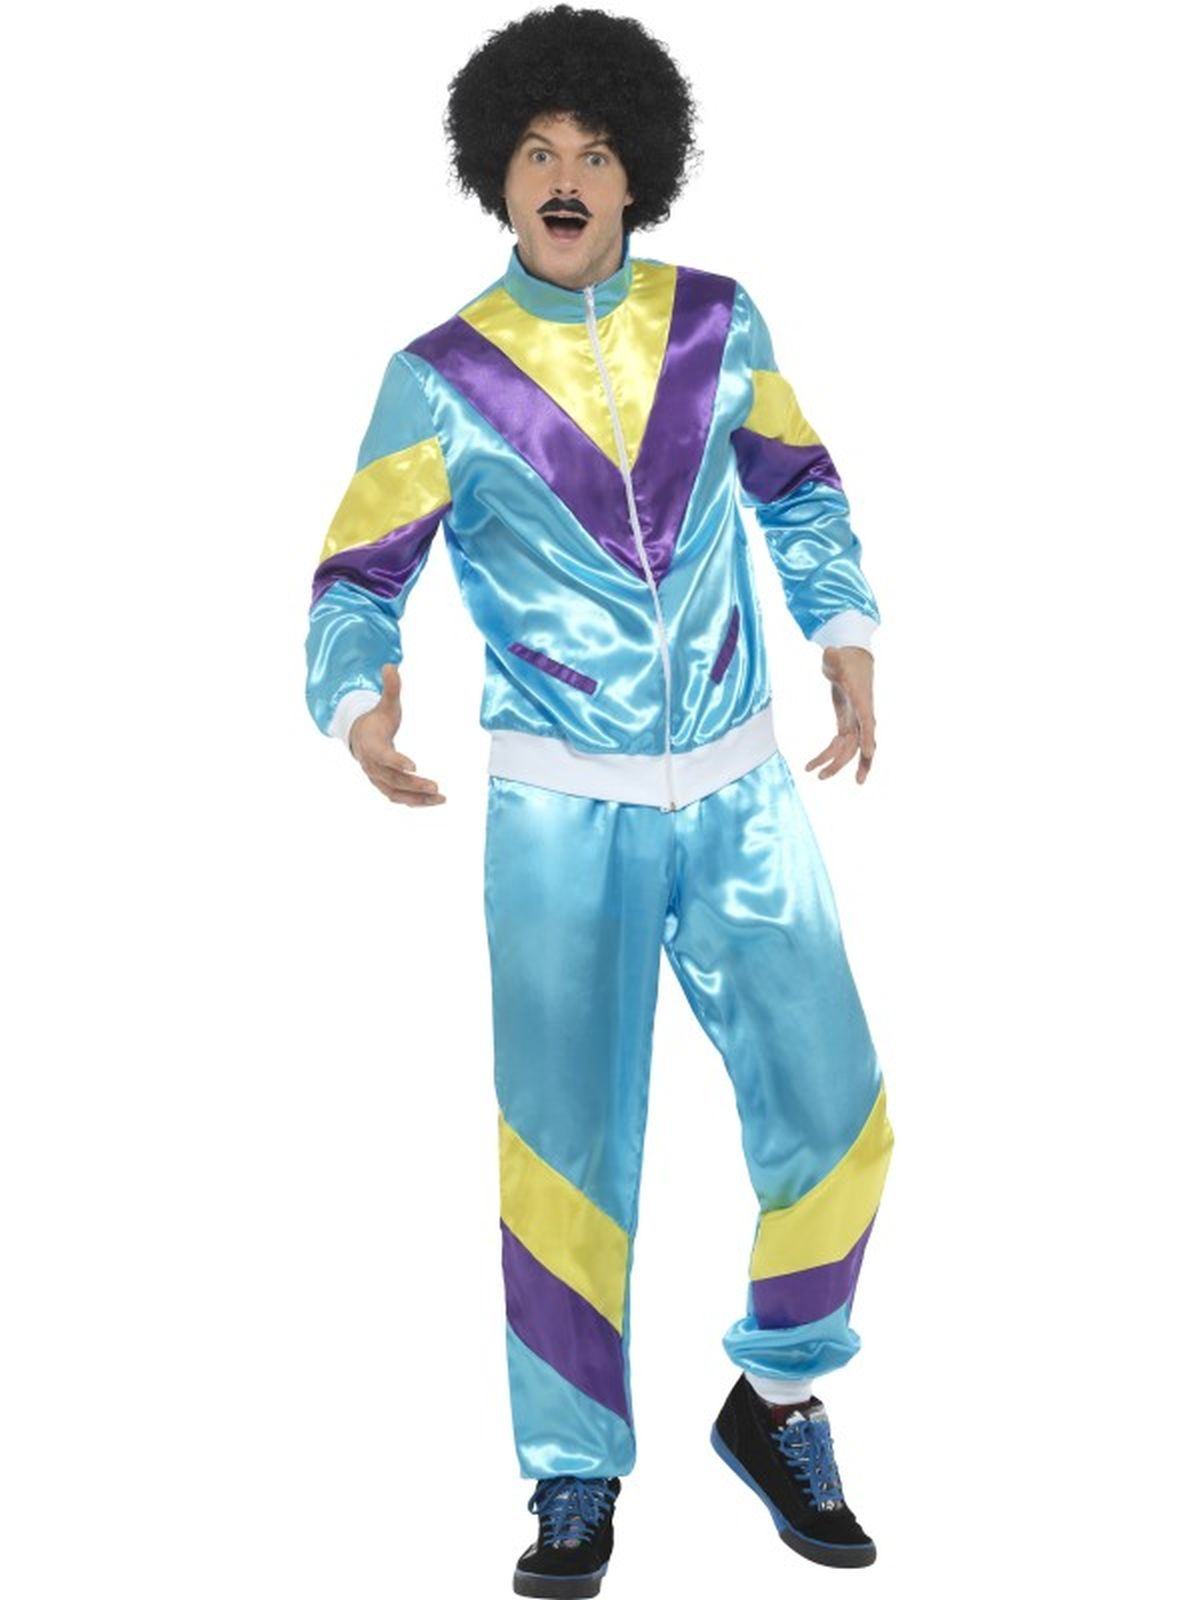 1980s 1990s Scouser Shell Track Suit Mens Fancy Dress Stag Party Costume Outfit